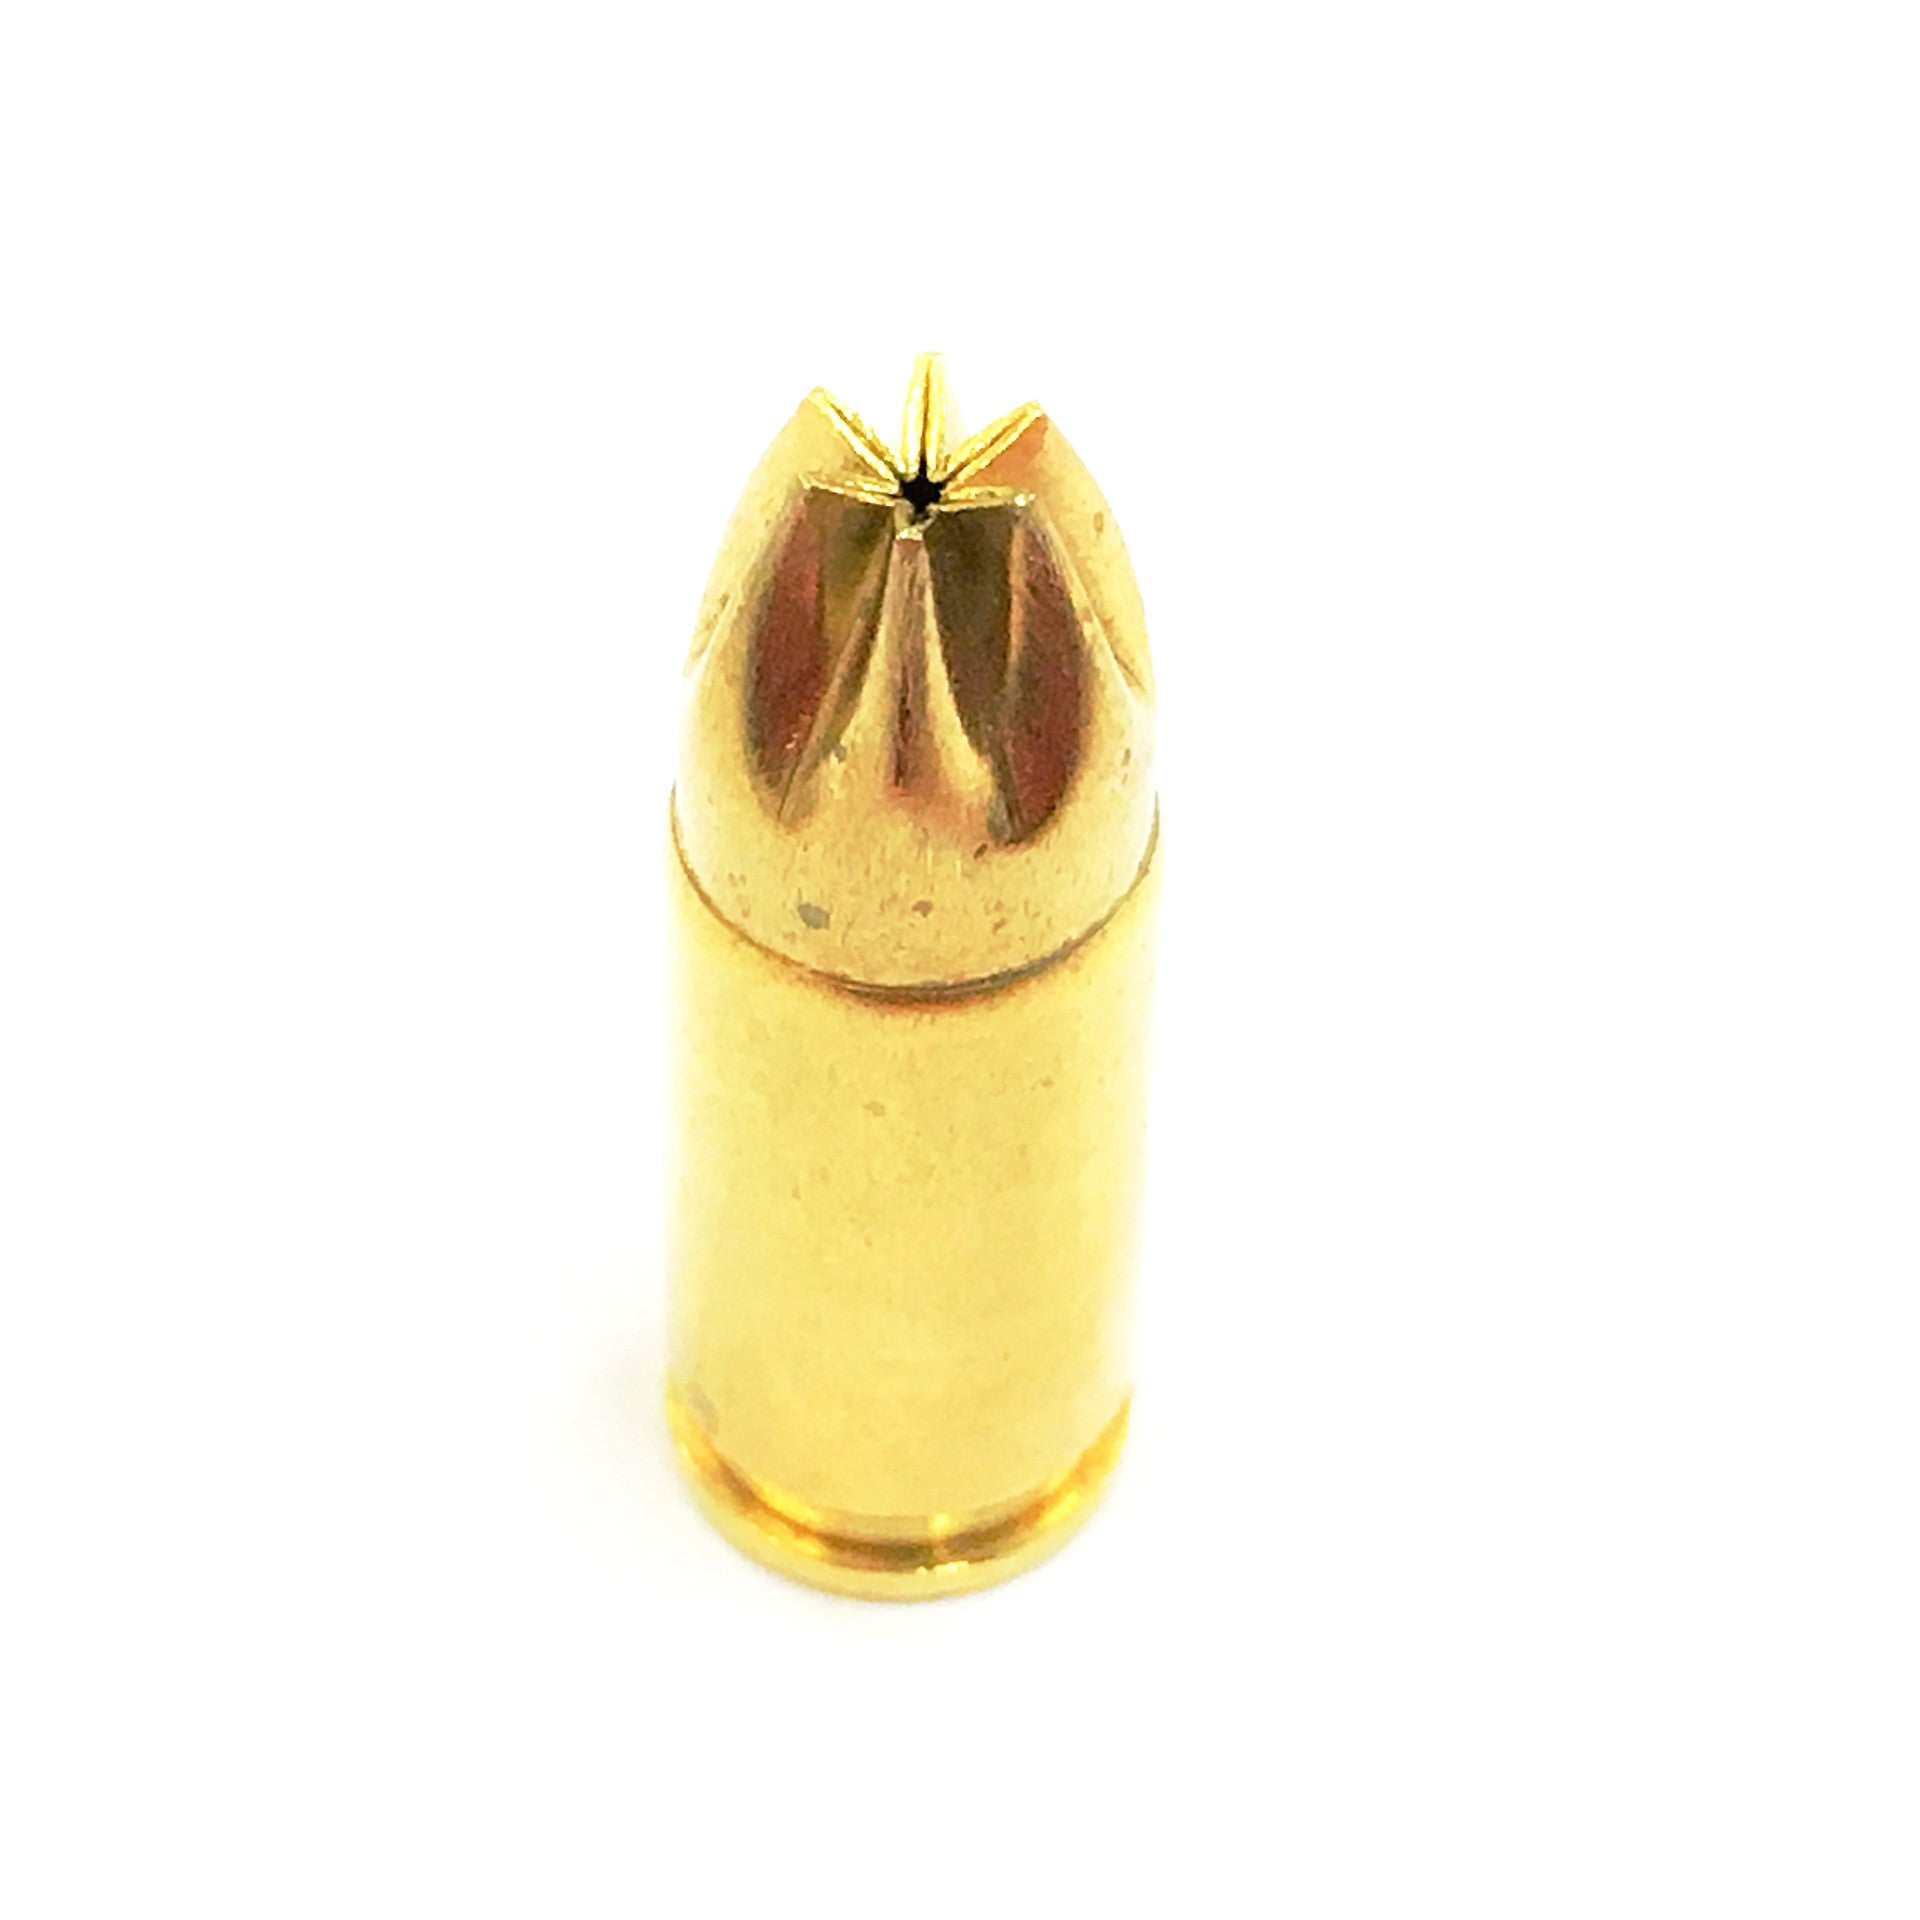 Fiocchi Ammunition 9mm Luger Blank Cartridges (50pk)